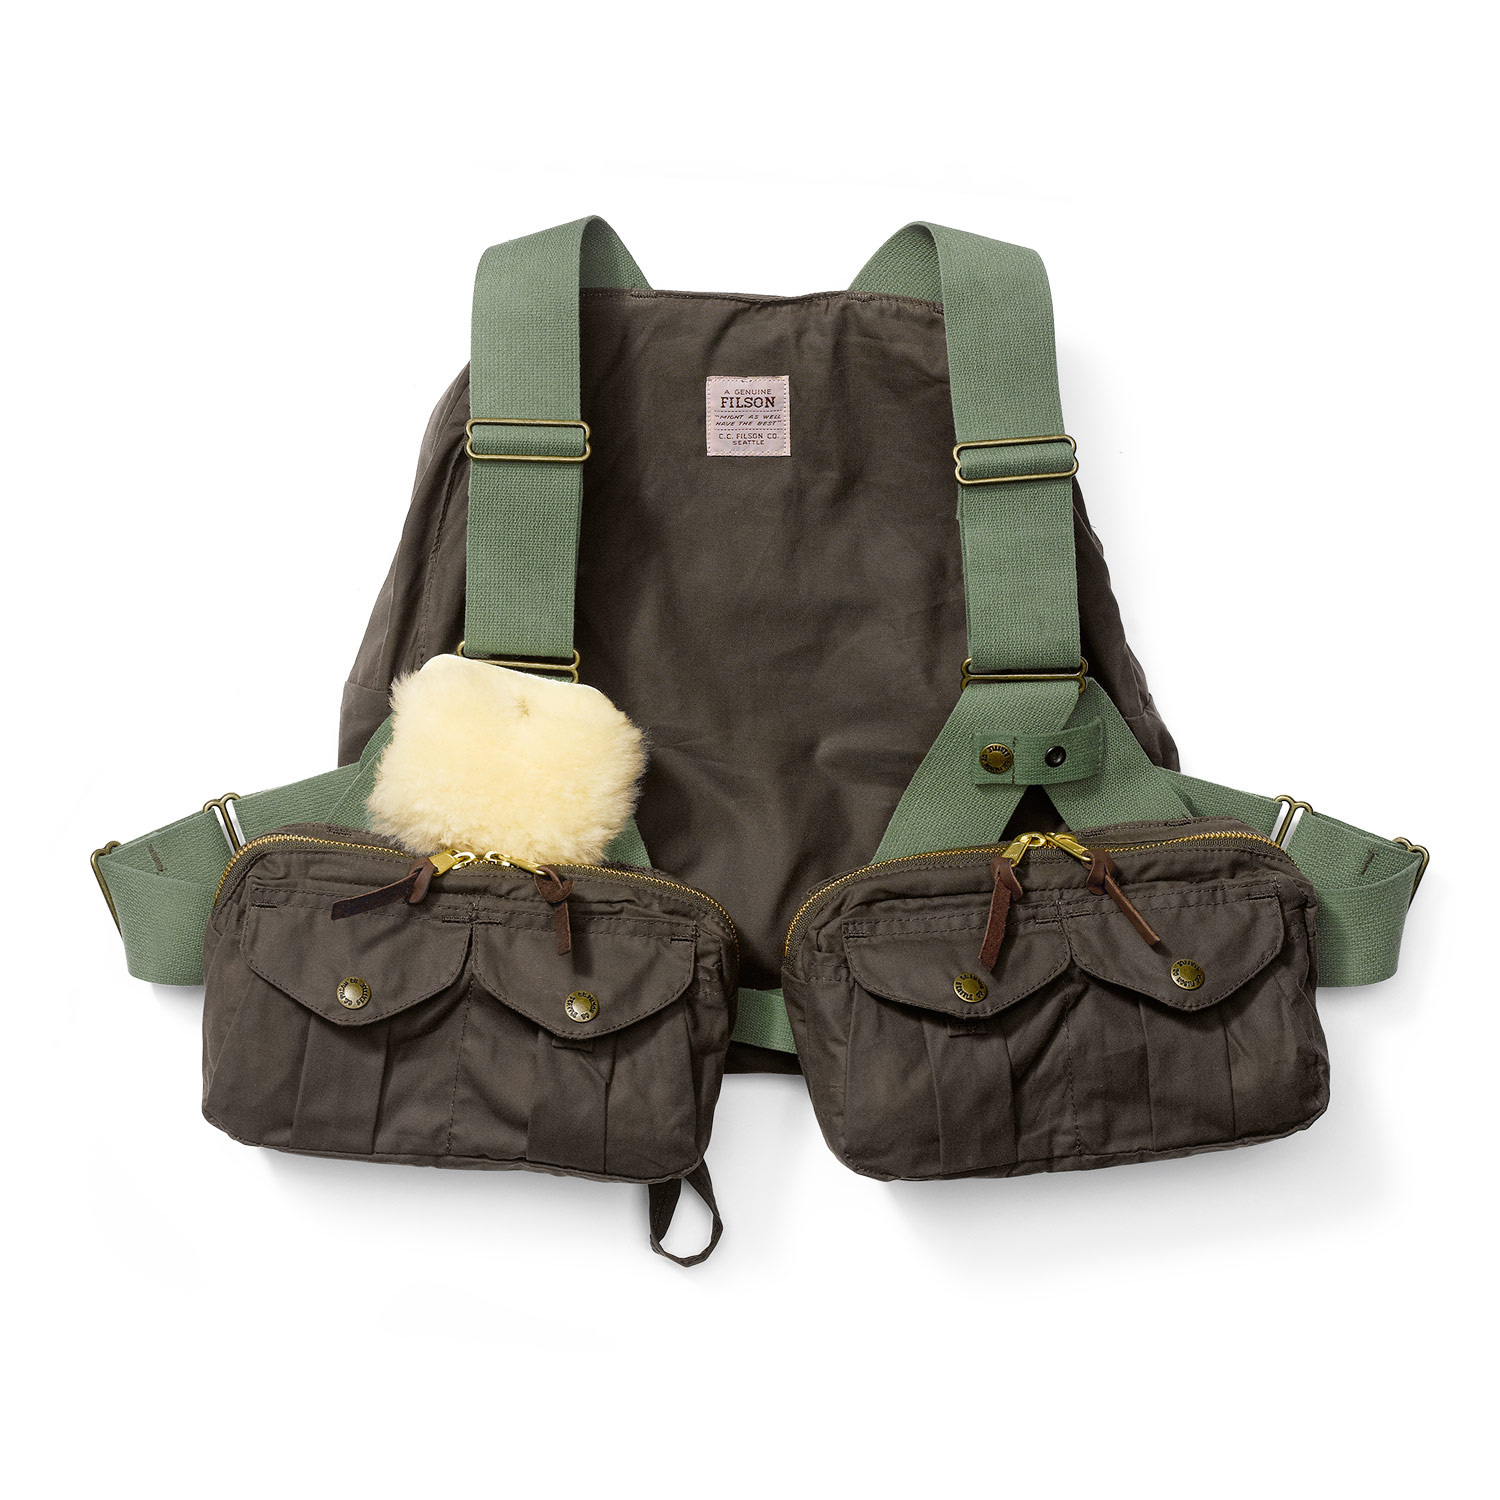 Filson Foul weather flyfishing vest #16002 2